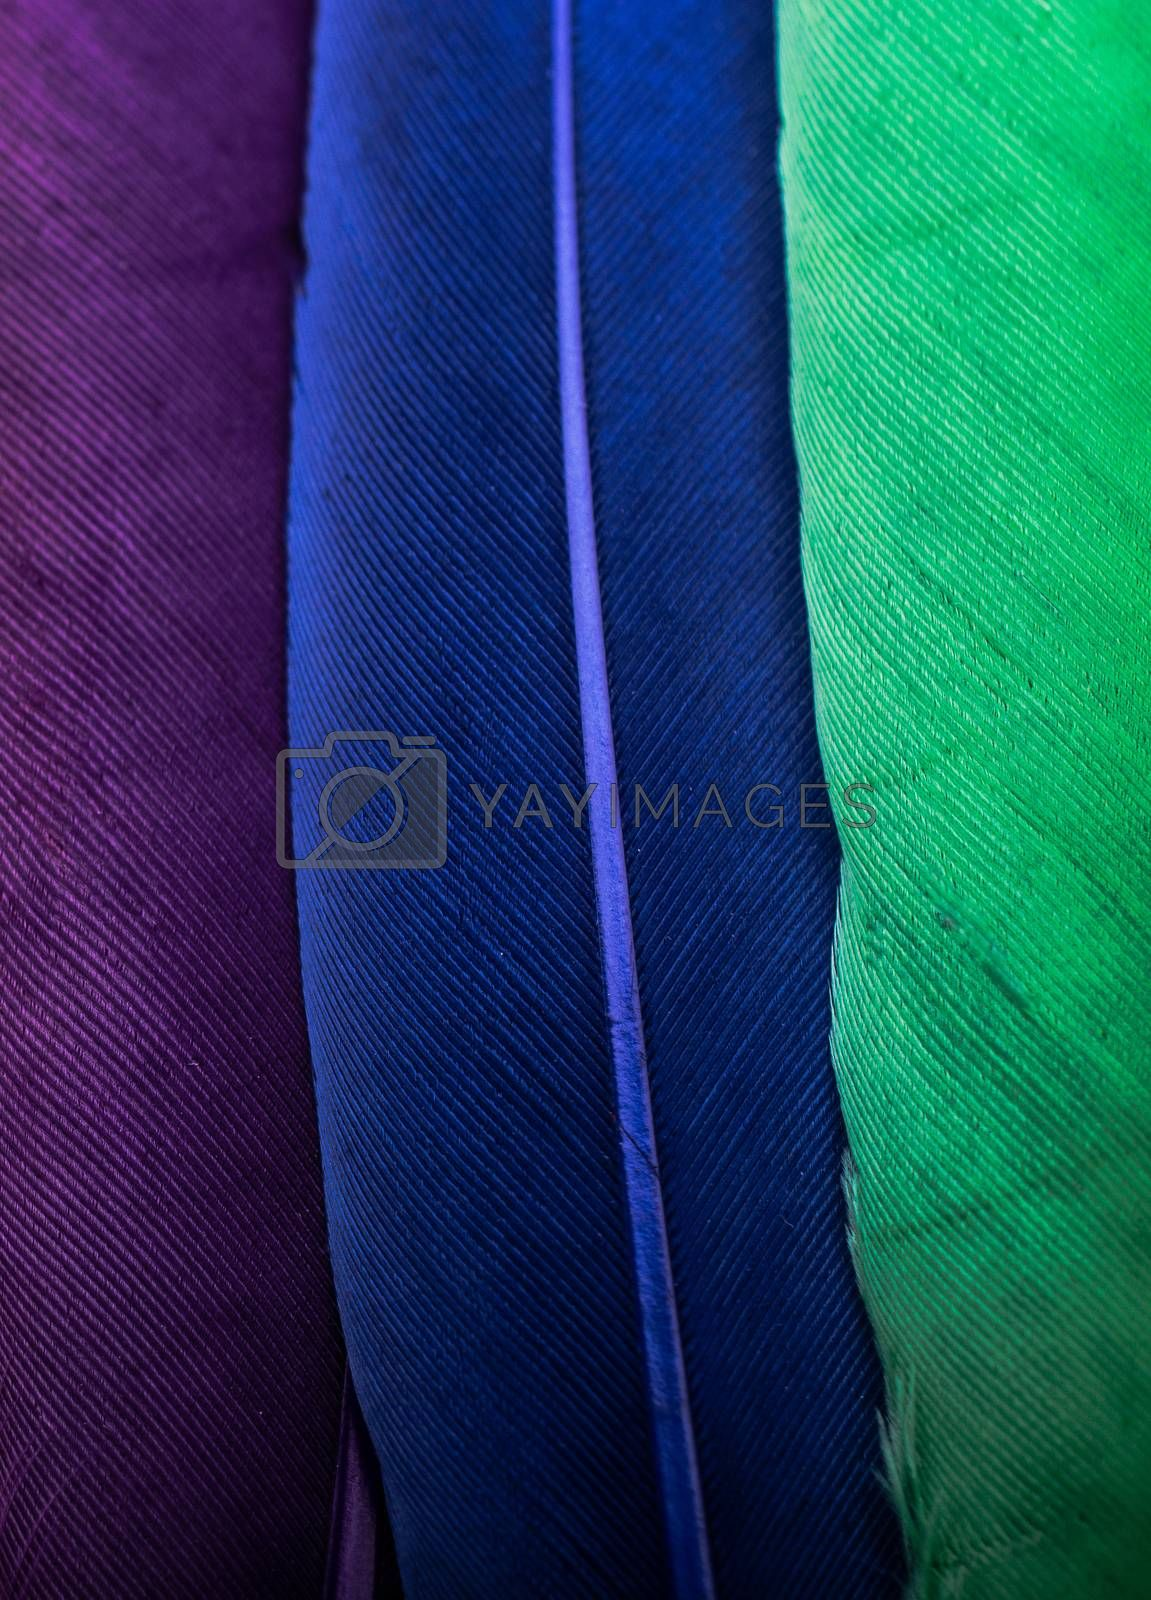 Studio shot photo of colored bird feathers as texture background